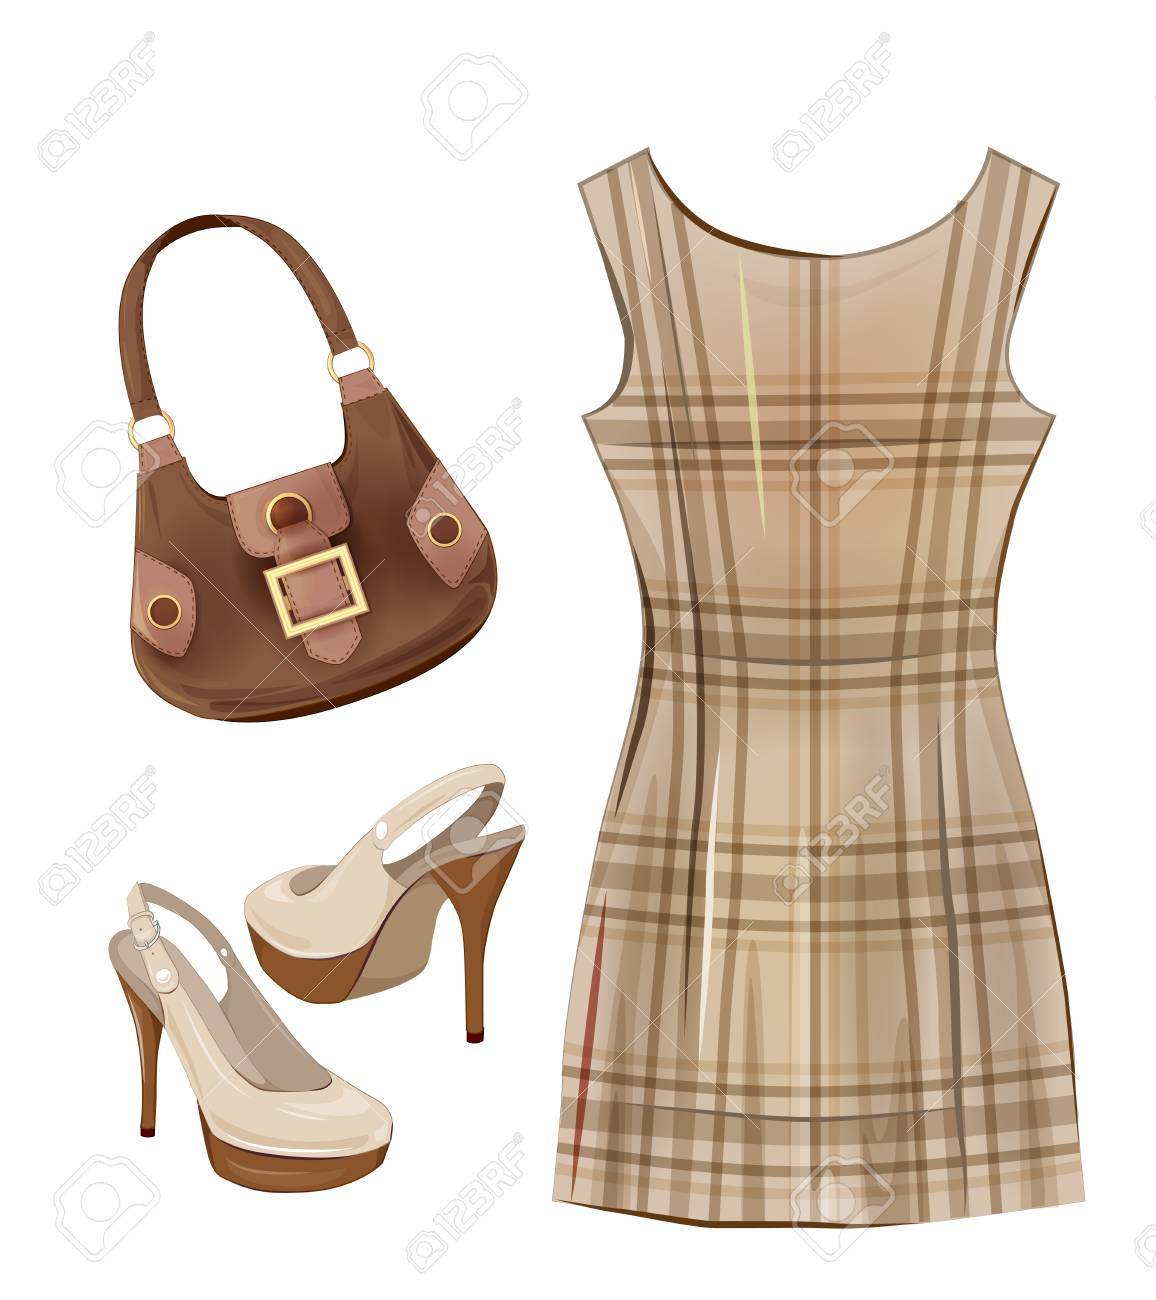 Fashion Items For Girls. Casual Dress